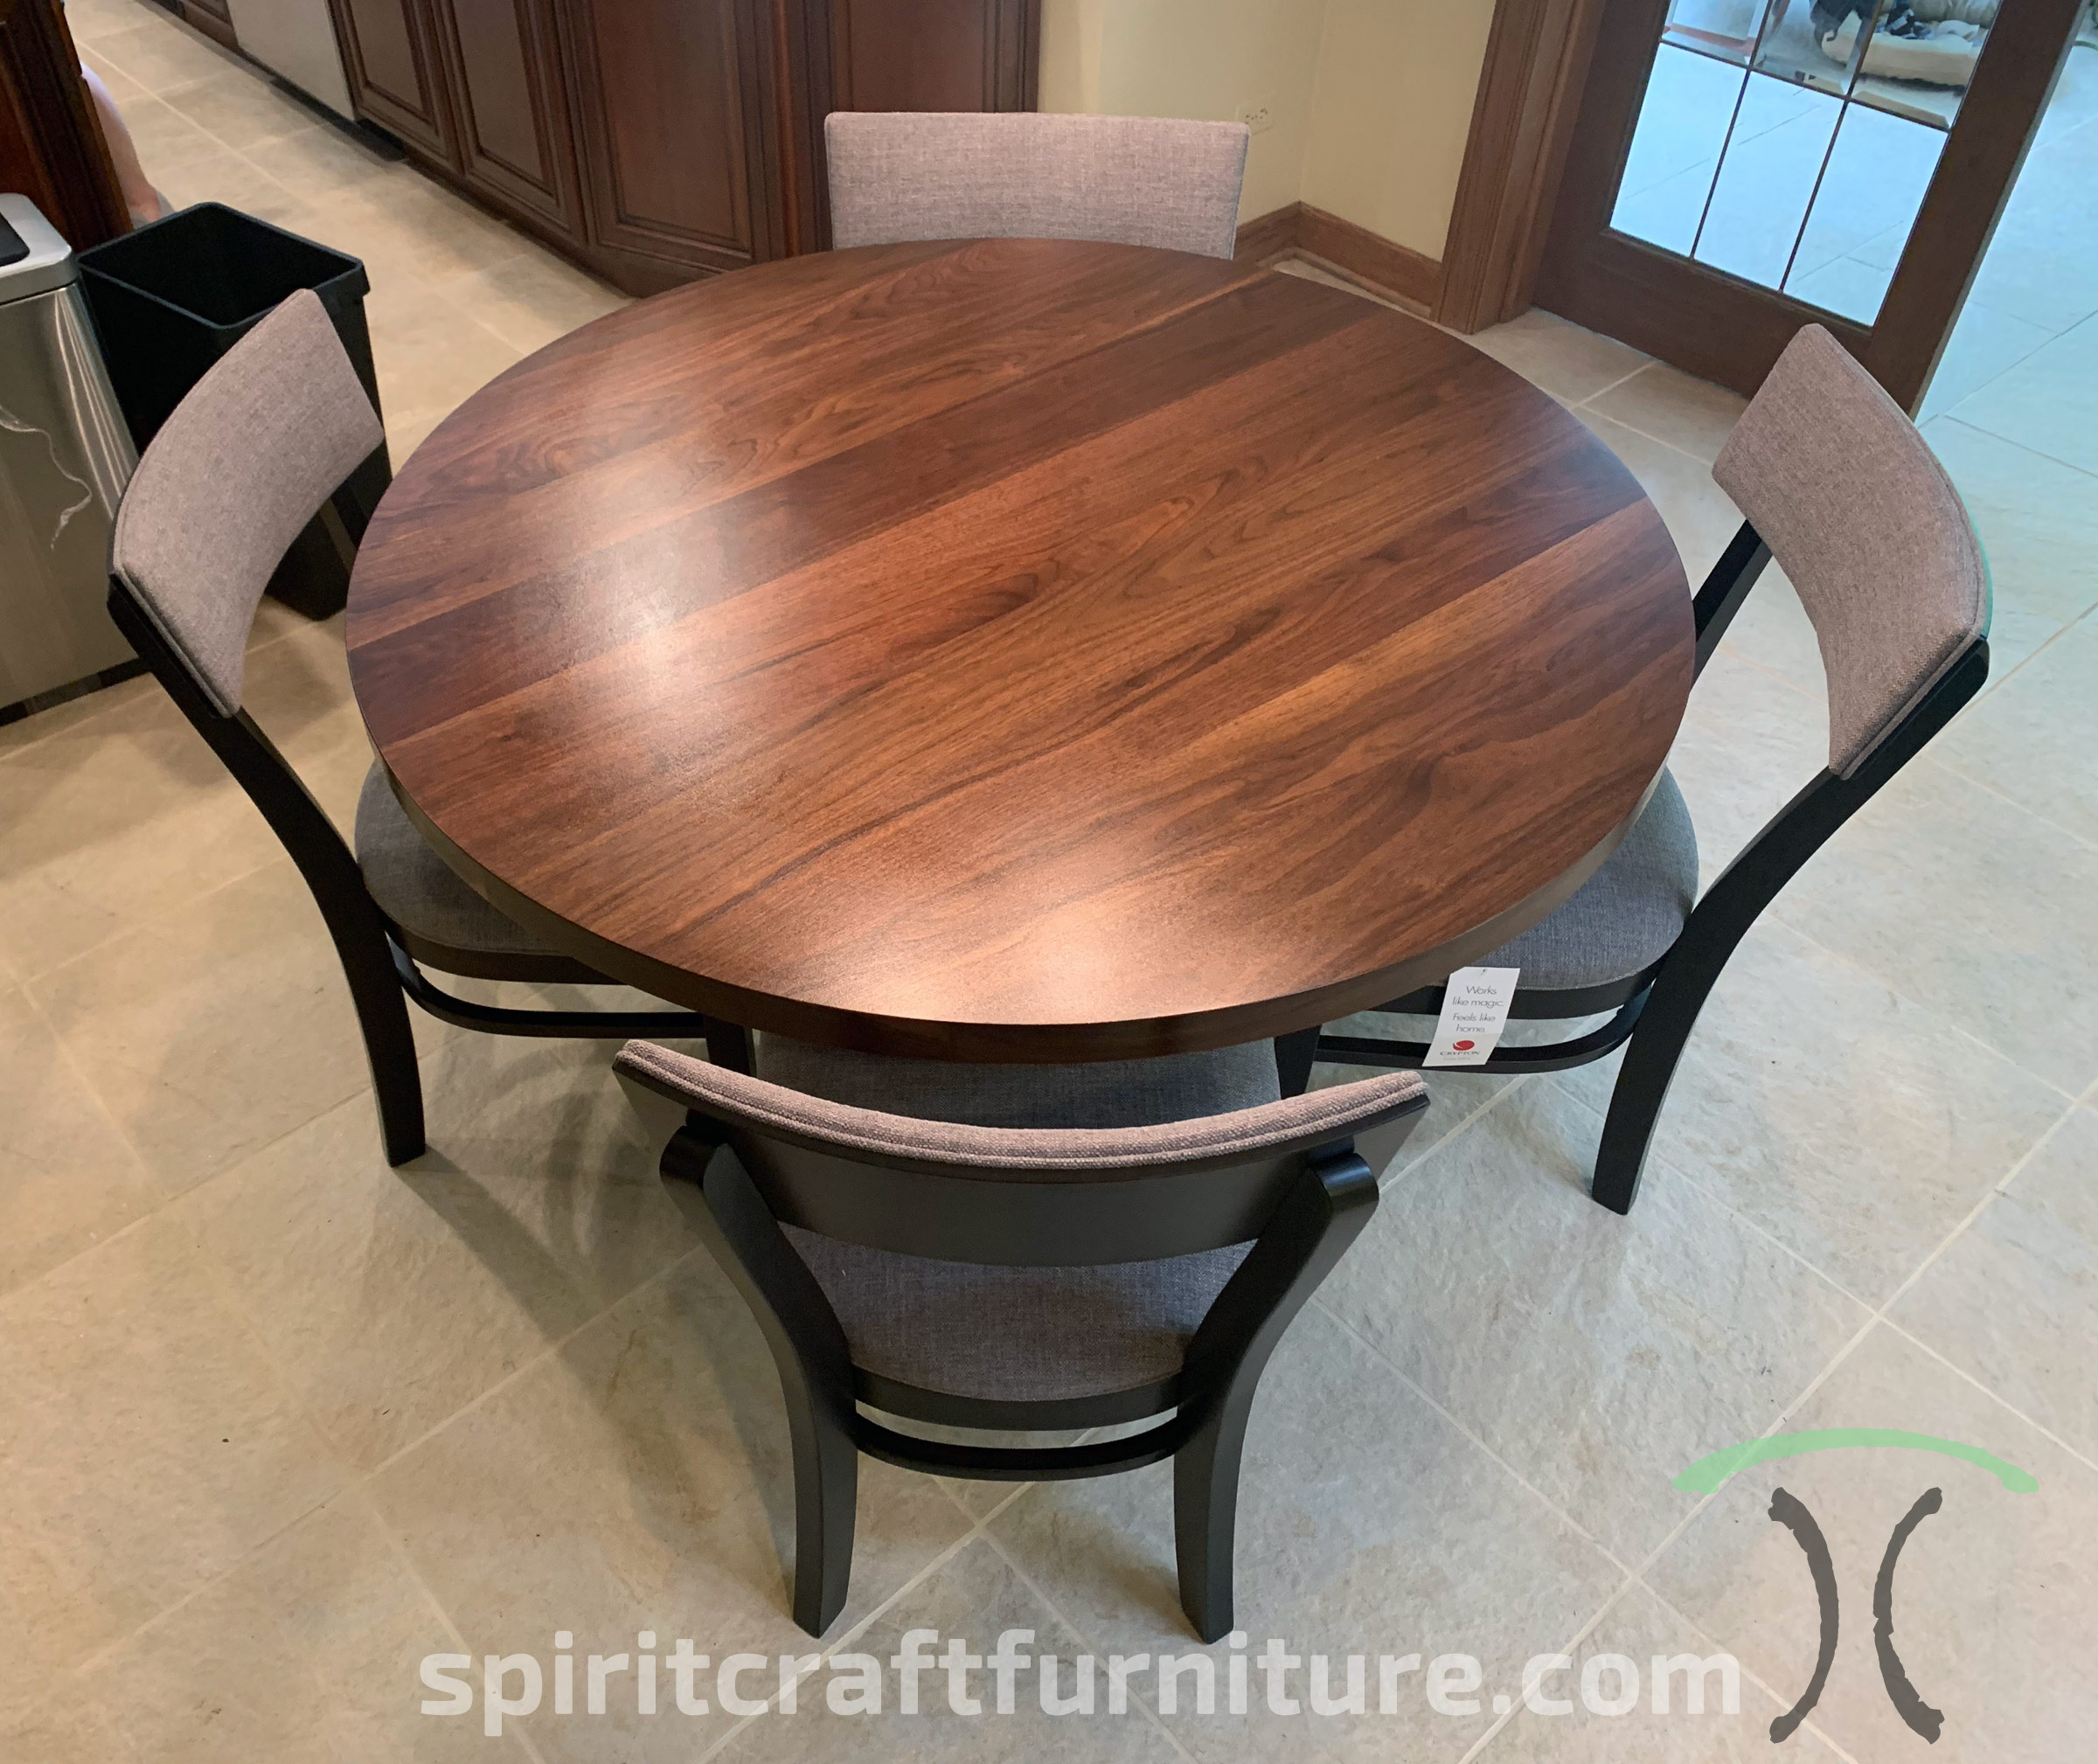 "60"" Walnut Table with RH Yoder ""Emerson"" Dining Chairs in Stained Brown Hard Maple in Chicago Home"